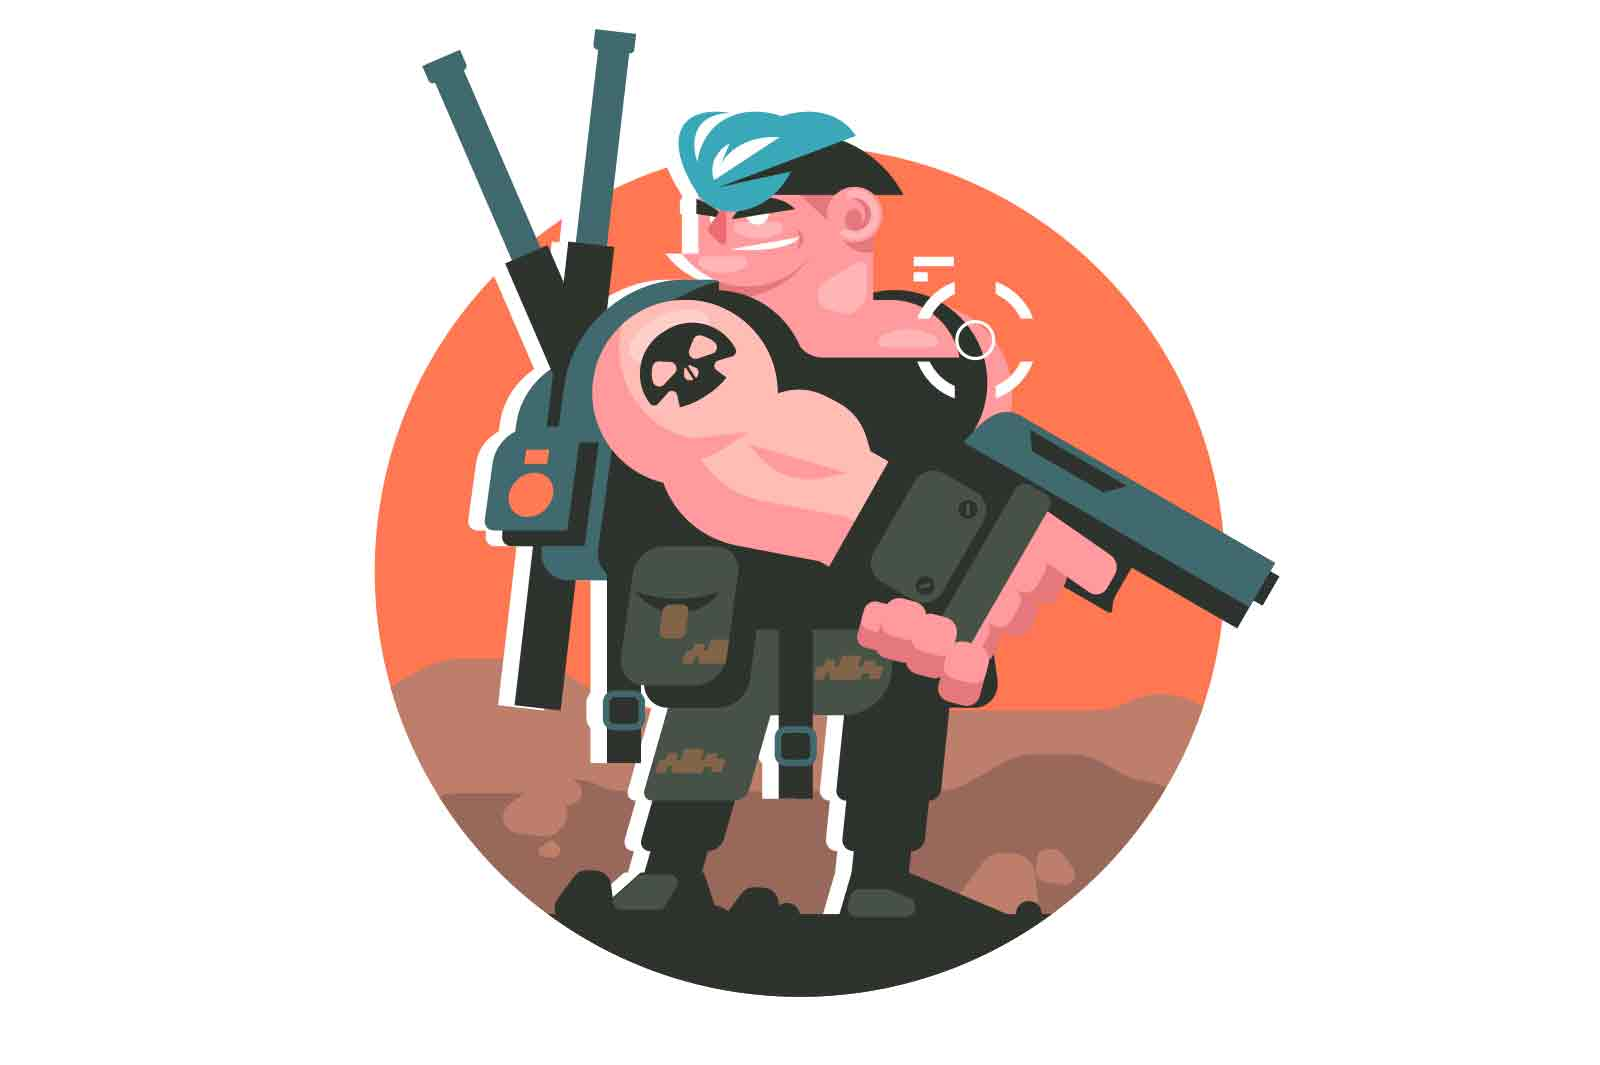 Gamer boy character with weapons vector illustration. Player with gun, shooting in aim flat style. Online games, addiction concept